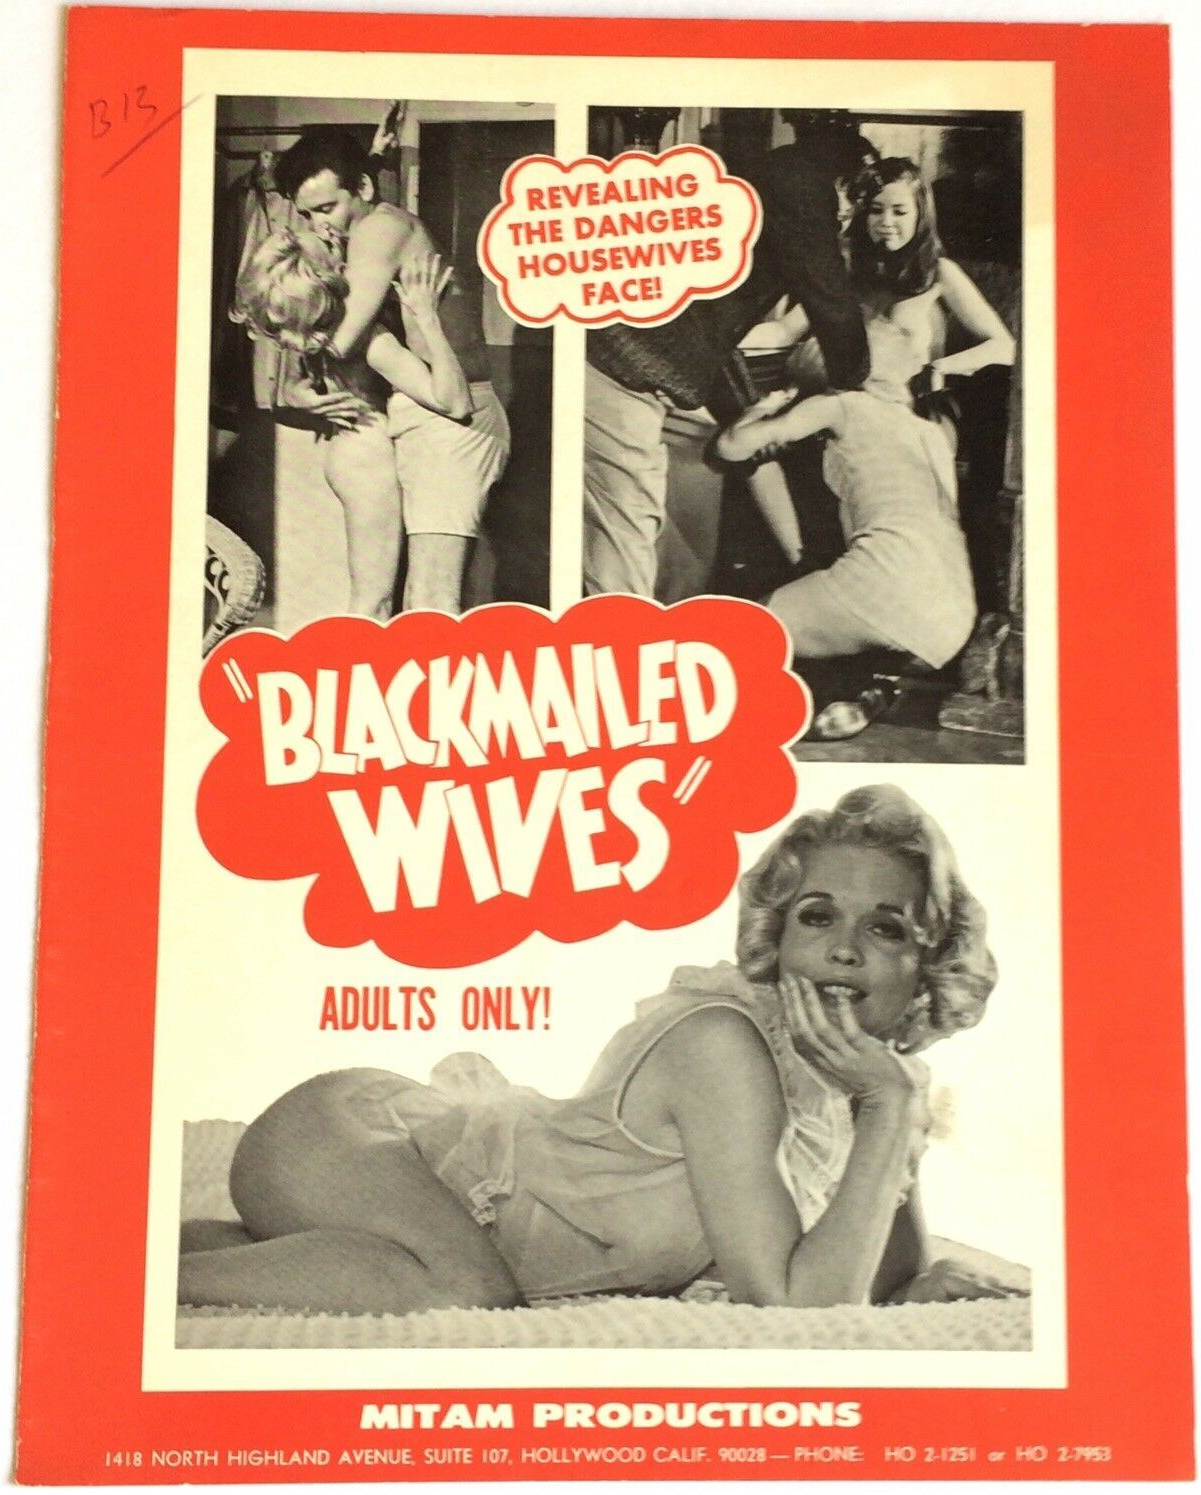 blackmailed wives pressbook